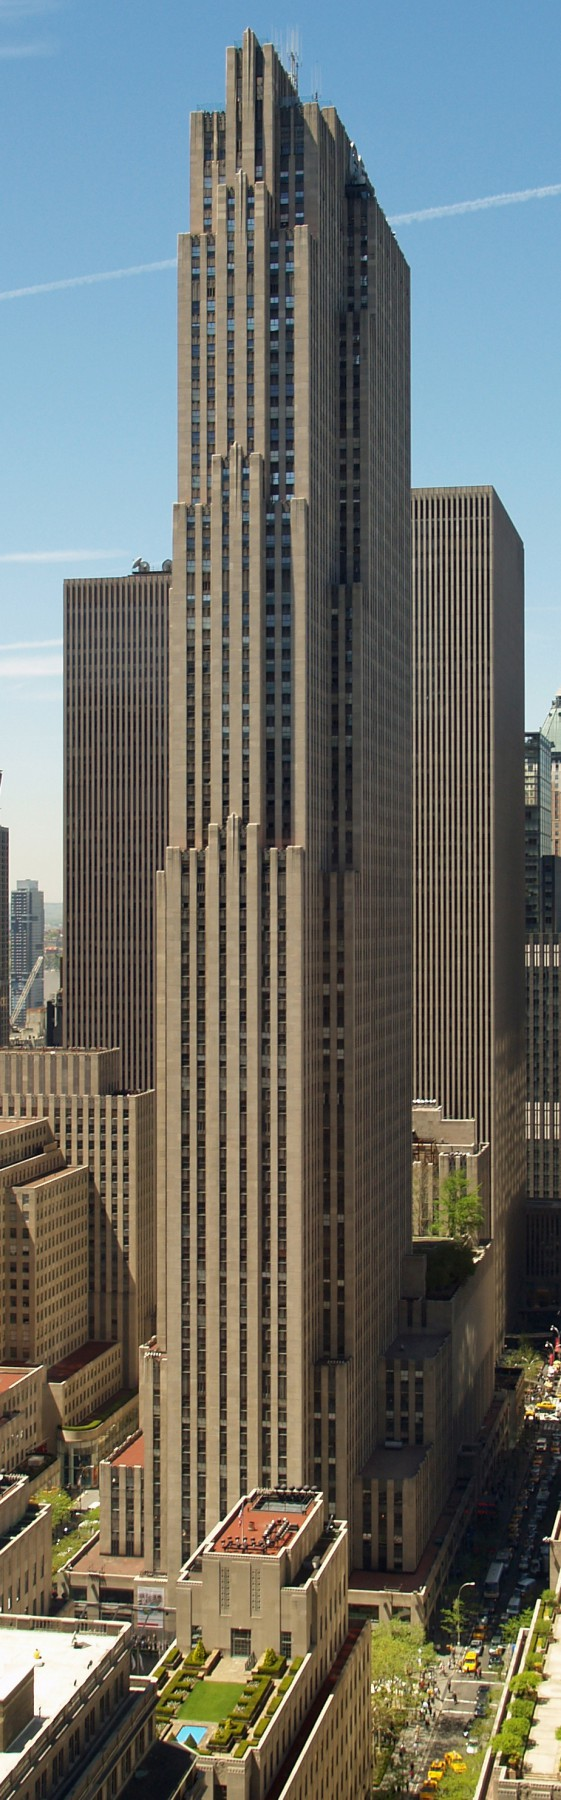 Rockefeller Centre 22 Acres Large - New York City, United States